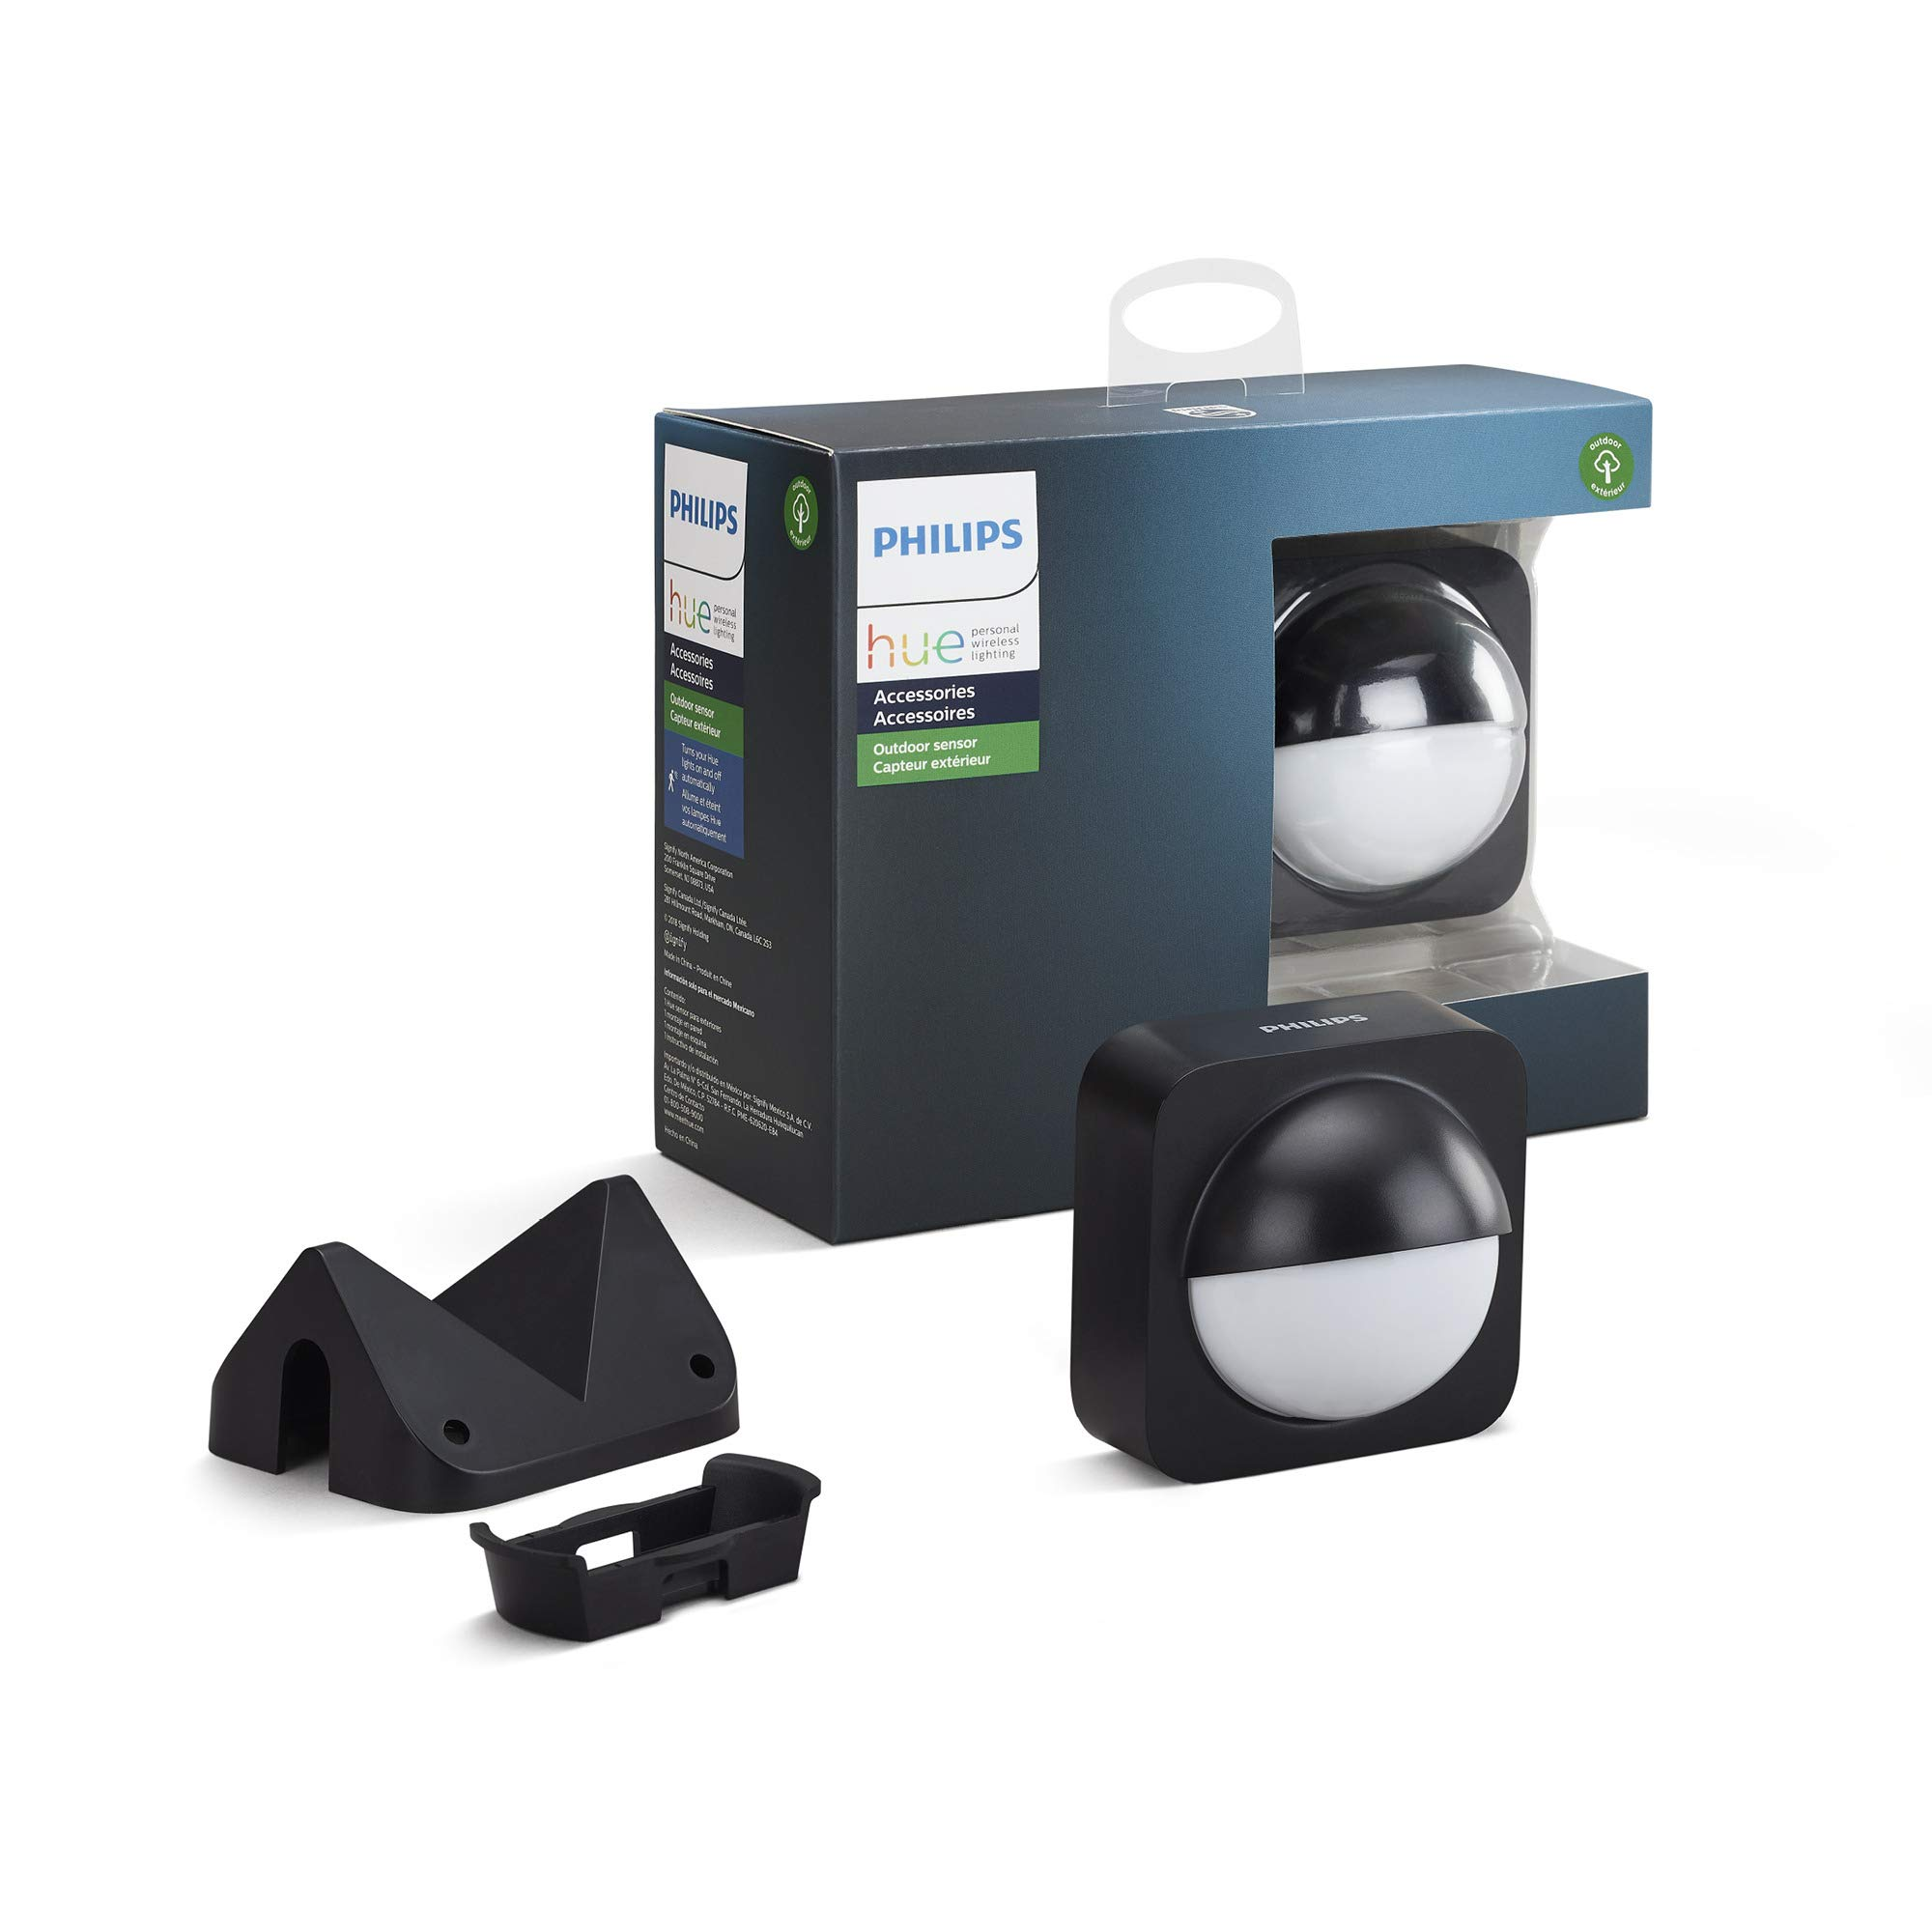 Philips Hue Dusk-to-Dawn Outdoor Motion Sensor for Smart Home, Wireless & Easy to Install (Hue Hub Required, for use with Philips Hue Smart Lights) by Philips Hue